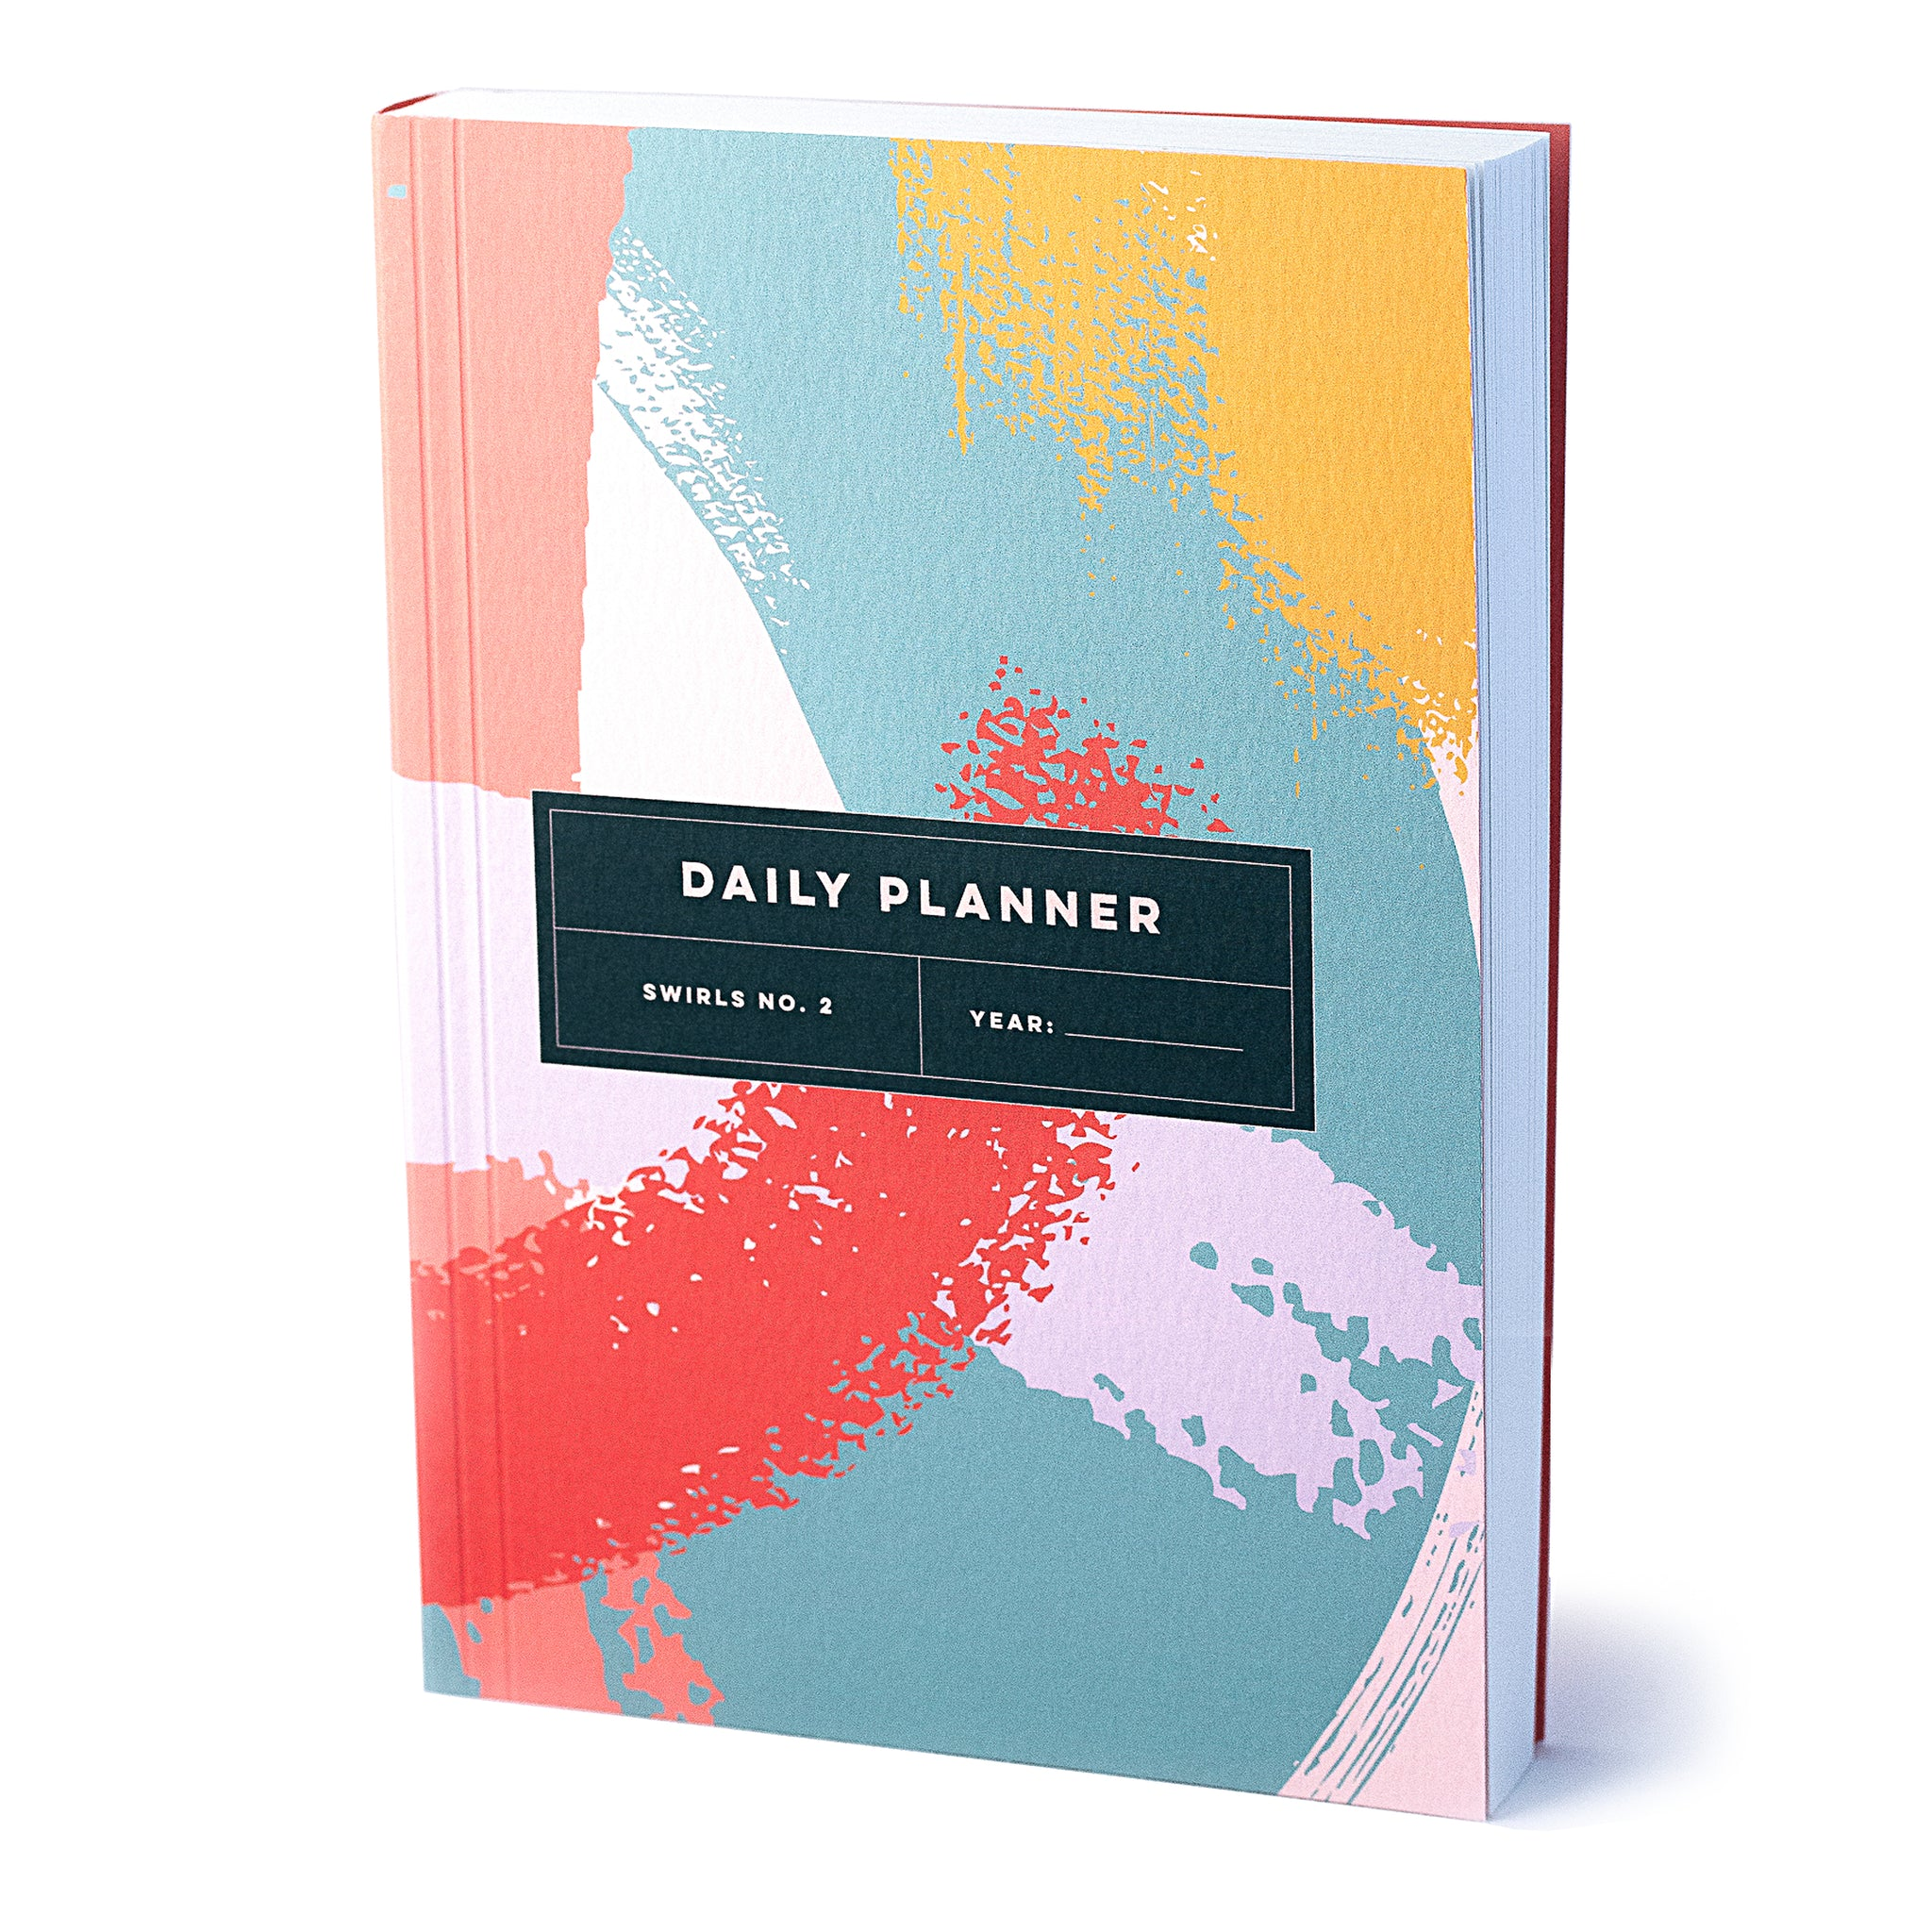 Daily Planner - Swirls No.2 - The Completist